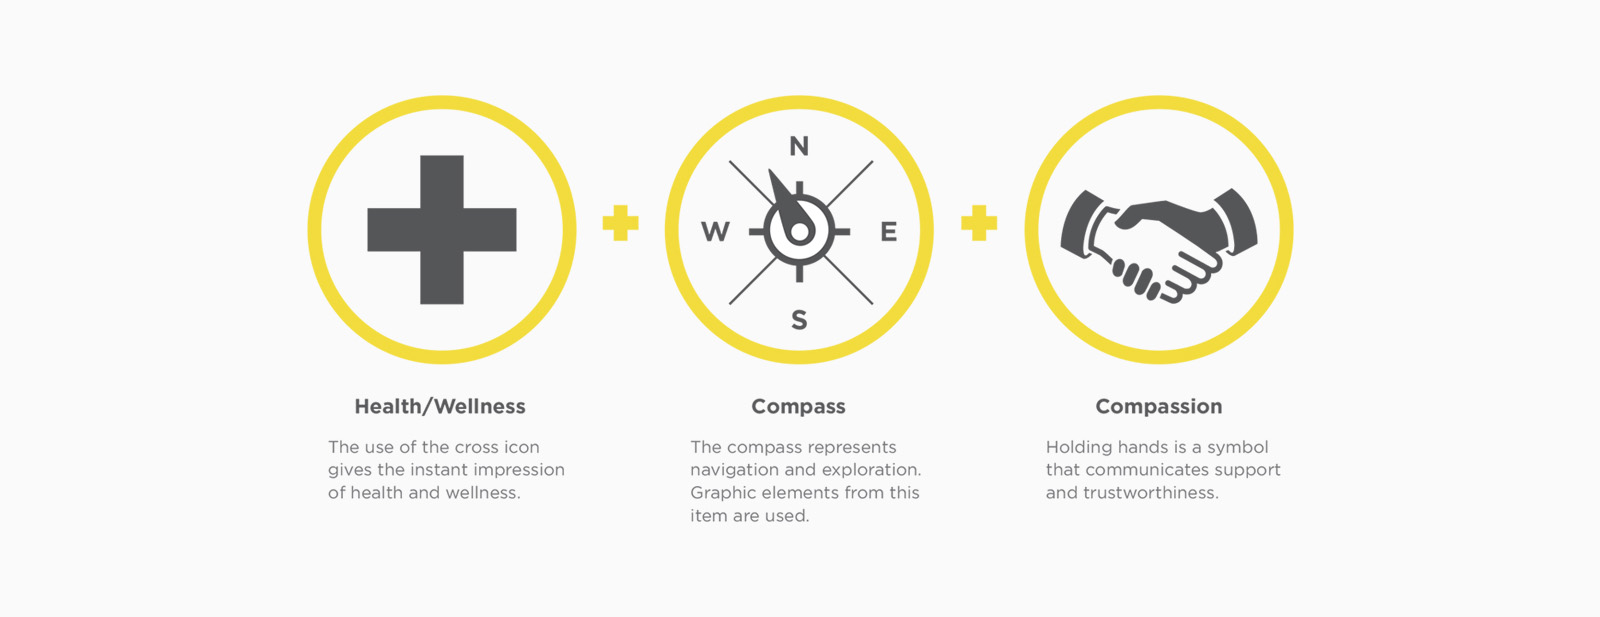 MET-Compass-Logo-Elements.jpg